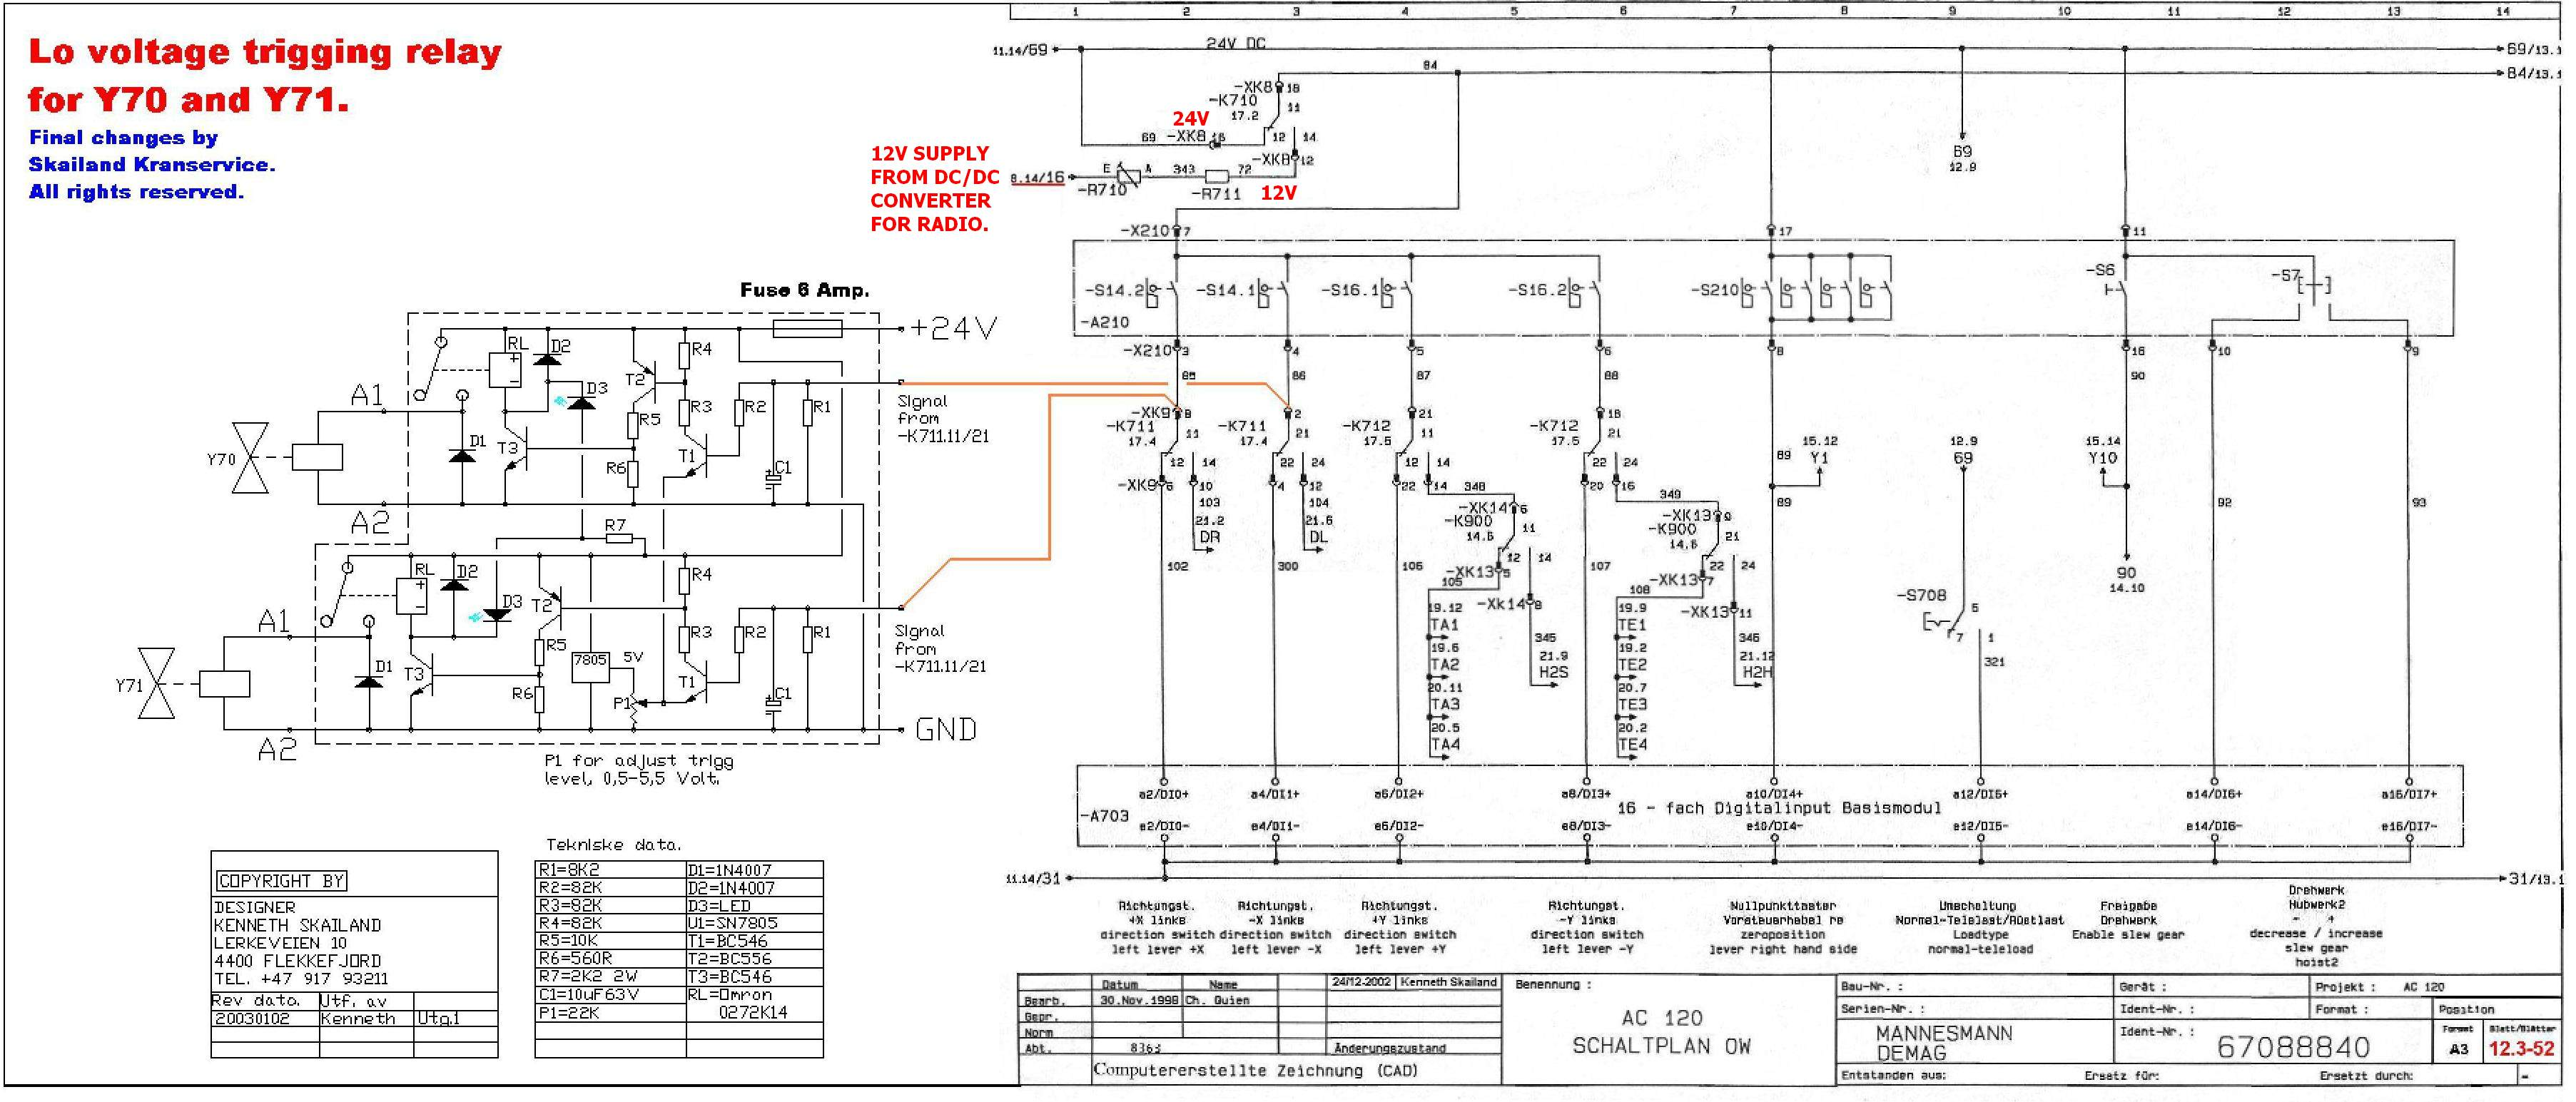 B12.3 demag hoist wiring diagram demag wiring diagrams instruction demag wiring diagram at webbmarketing.co